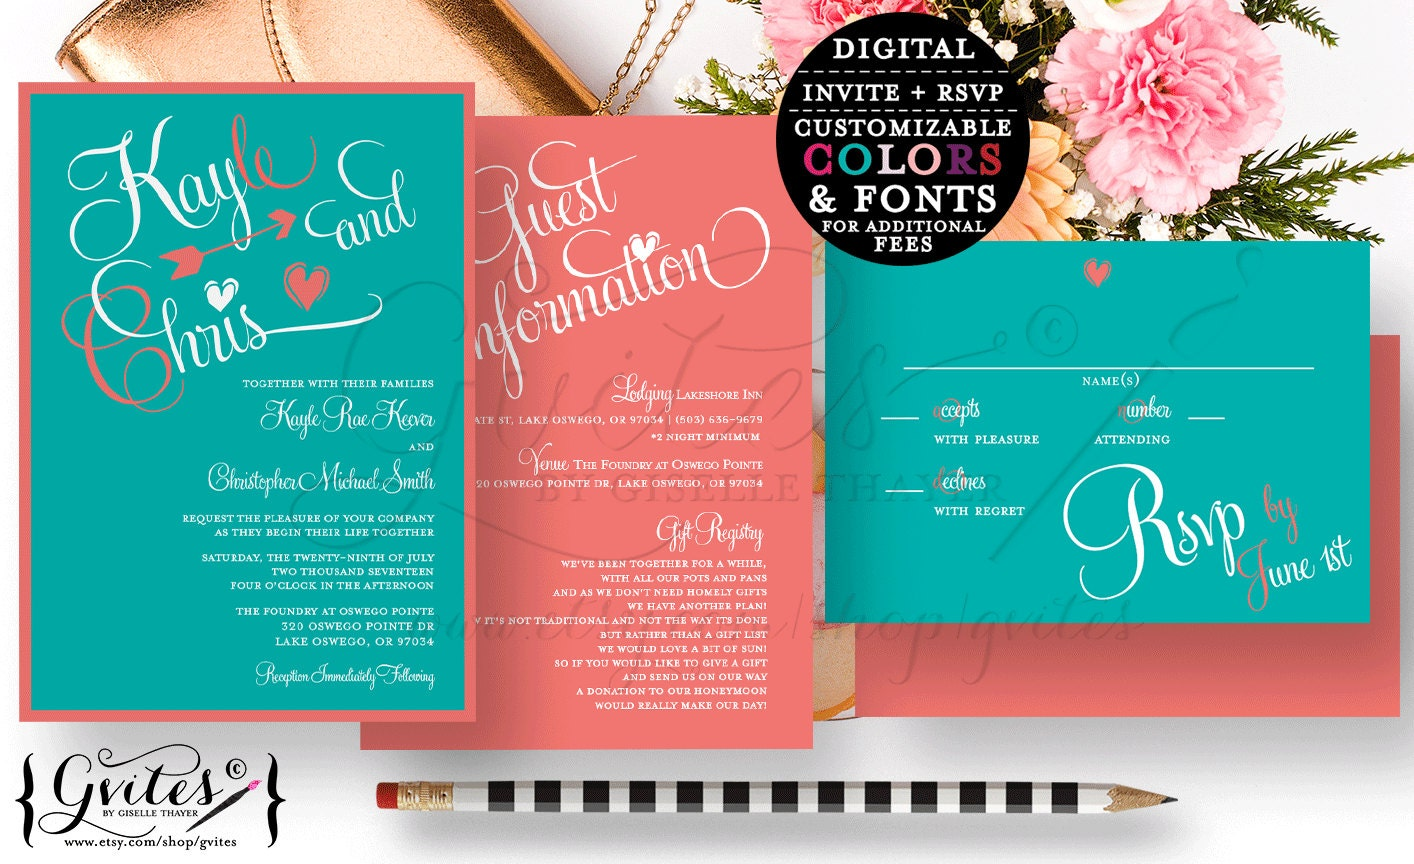 Turquoise And Coral Wedding Invitations: Coral And Turquoise Wedding Invitation Digital Template